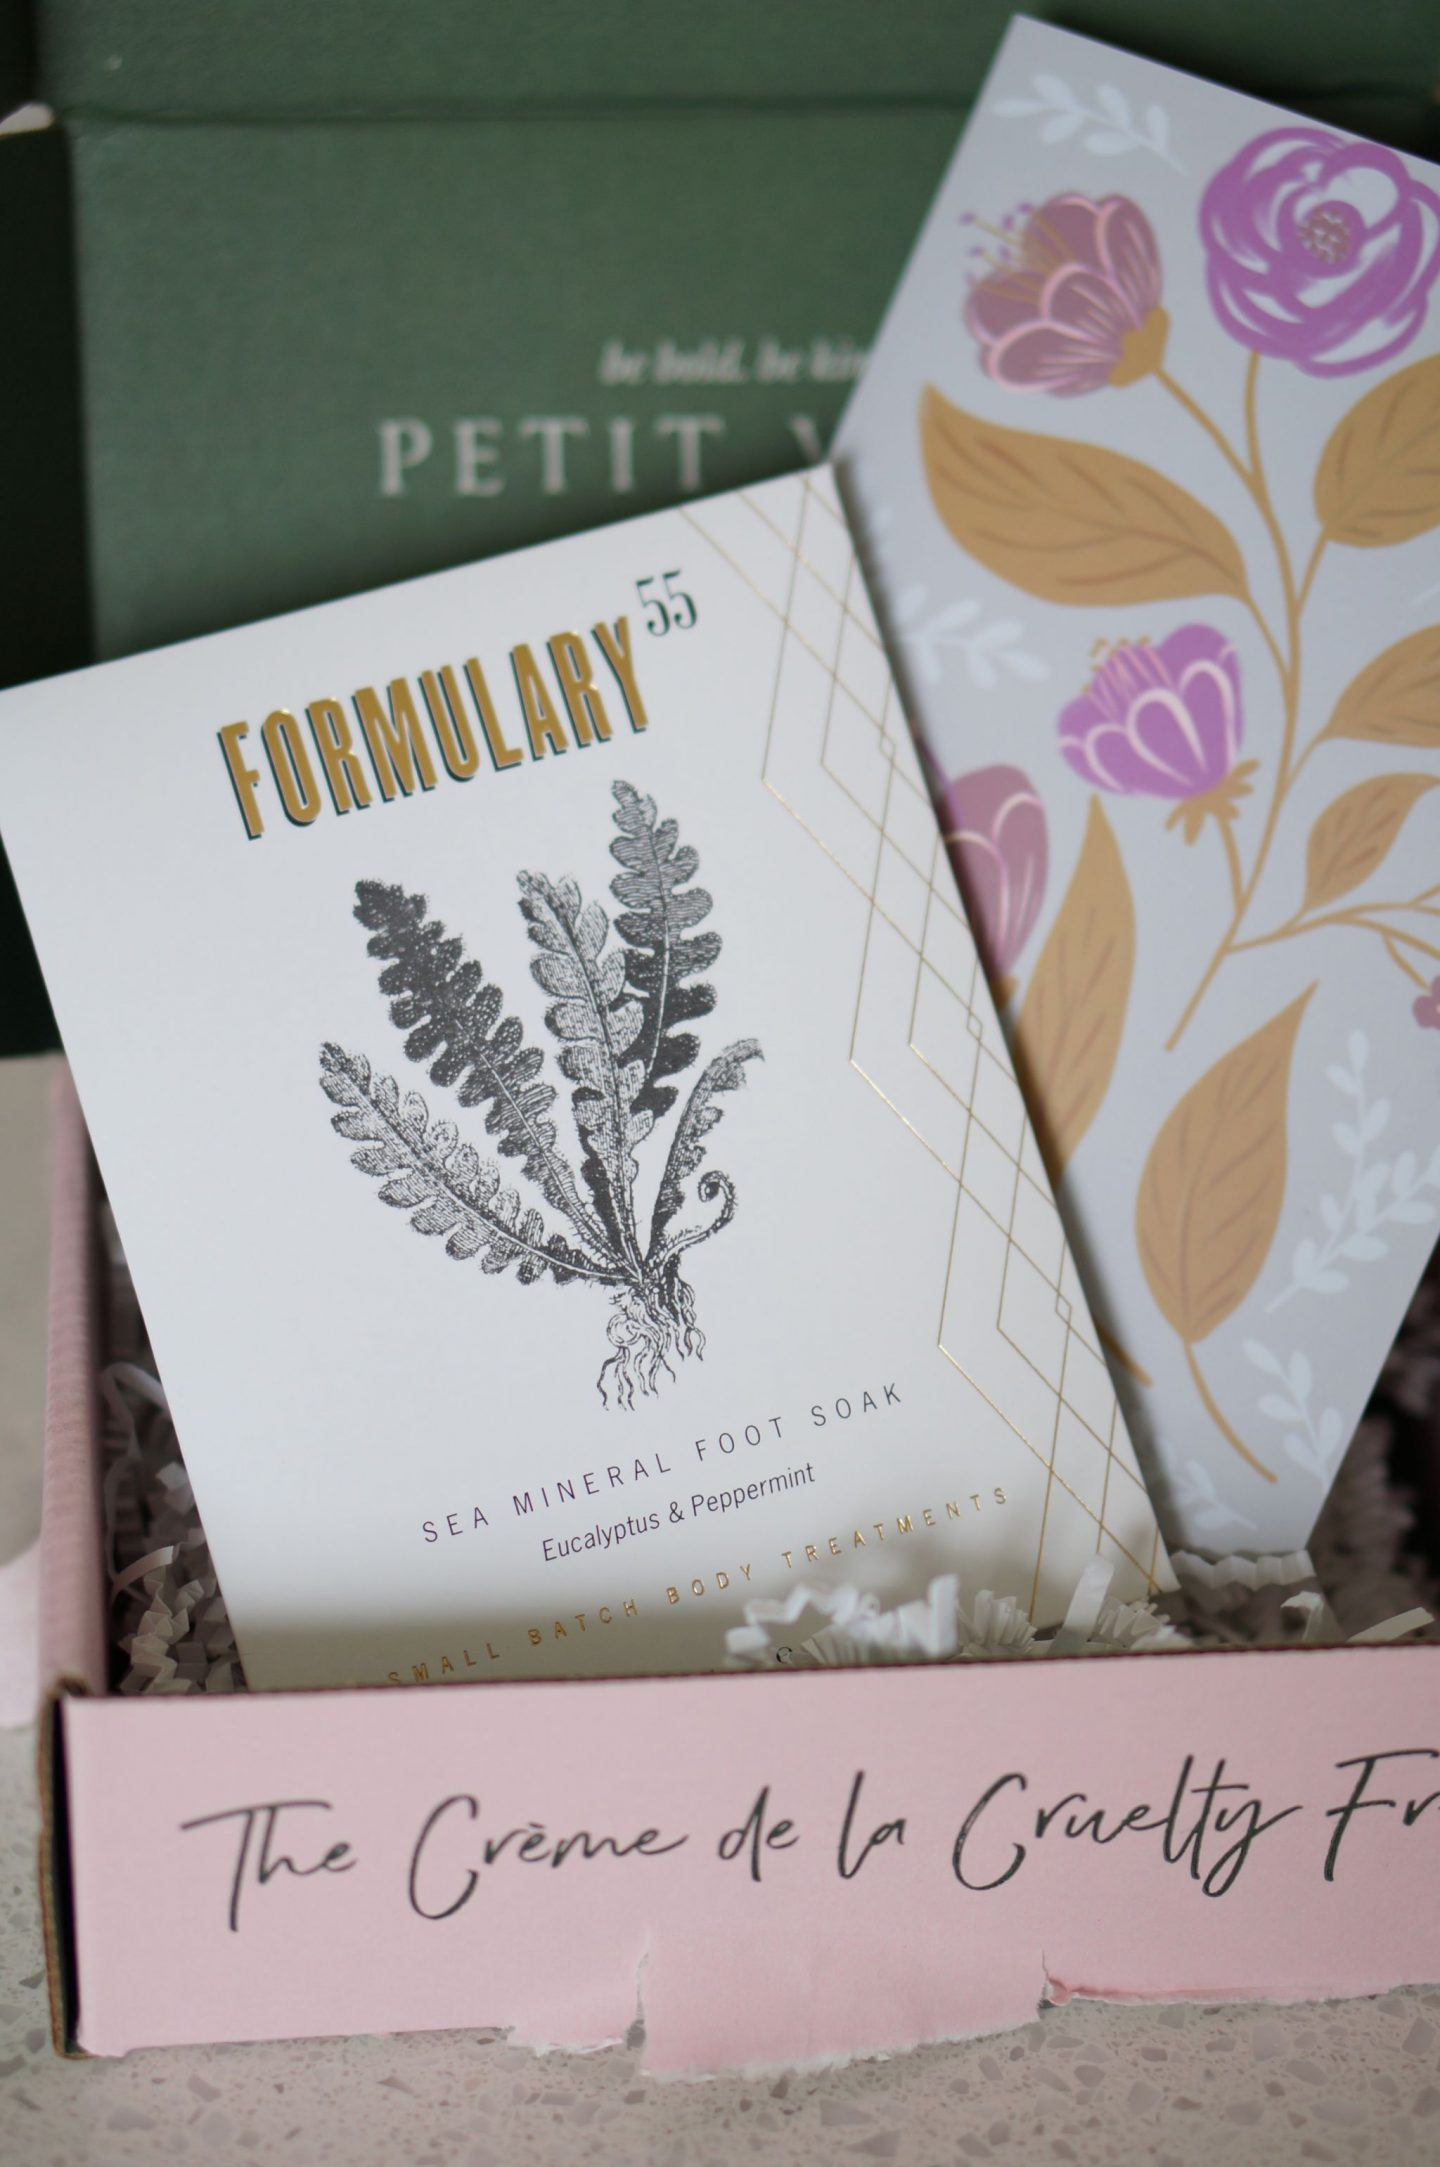 North Carolina style blogger Rebecca Lately shares her Petit Vour February 2019 box. If you are looking for natural and cruelty free recs, check this out!